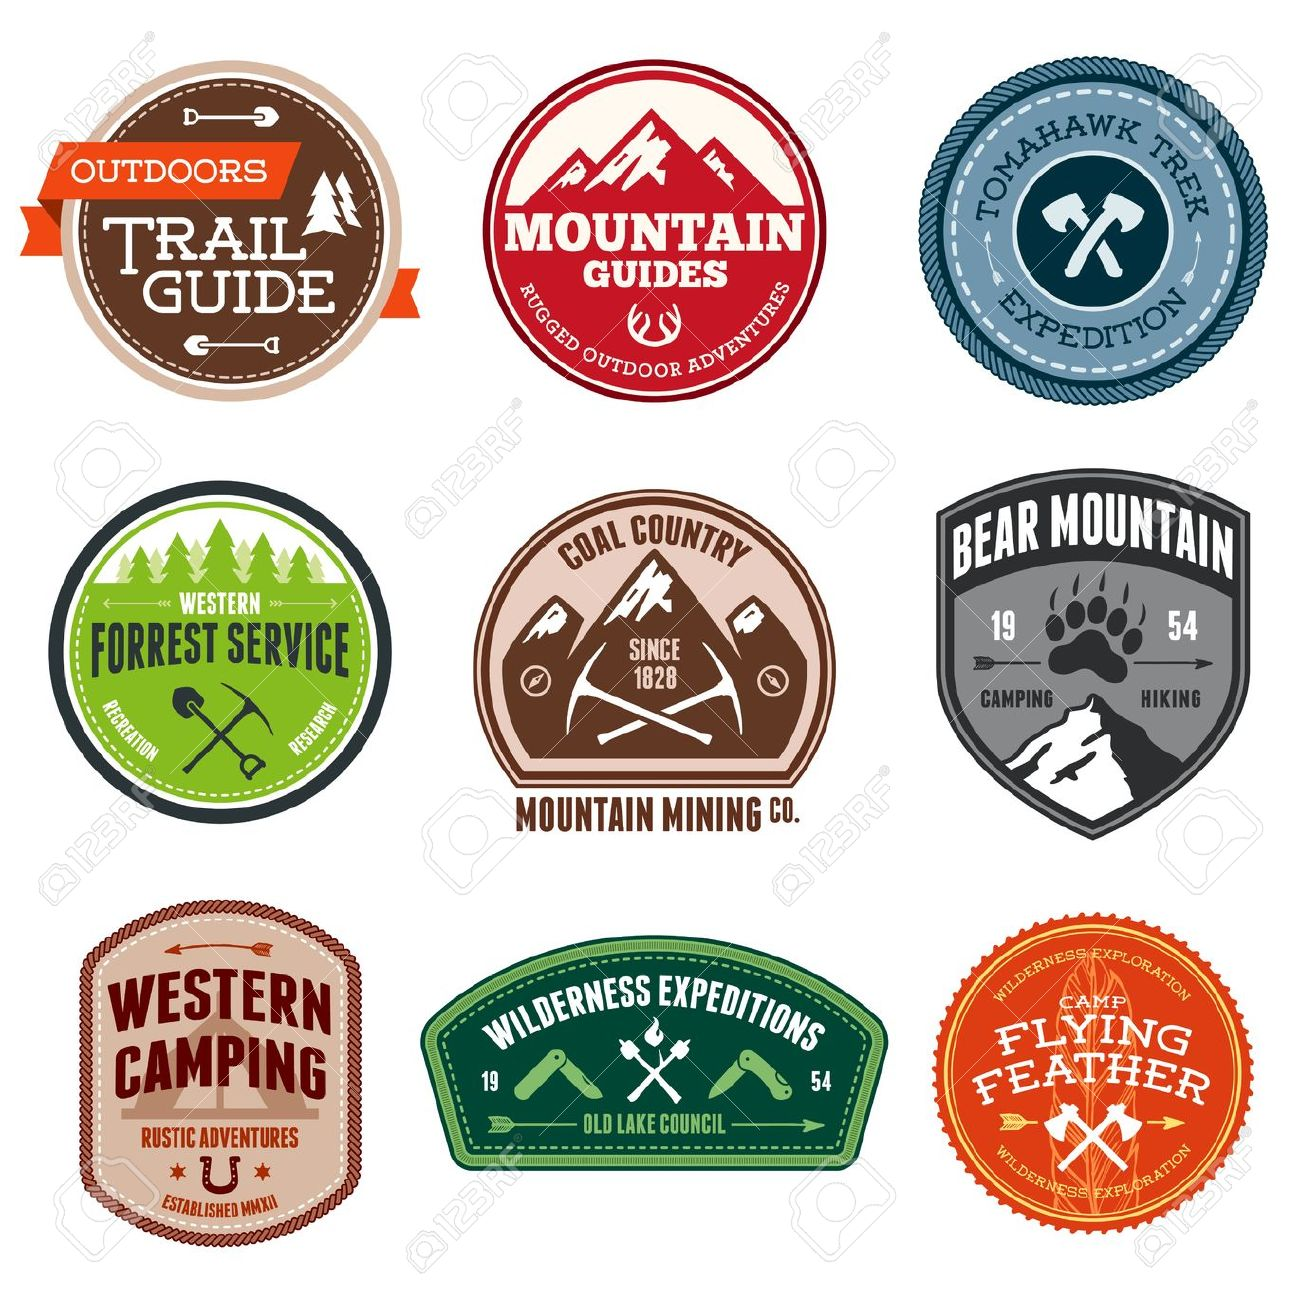 Outdoor clipart mountain hiking Clip Clip Expeditions Art Download